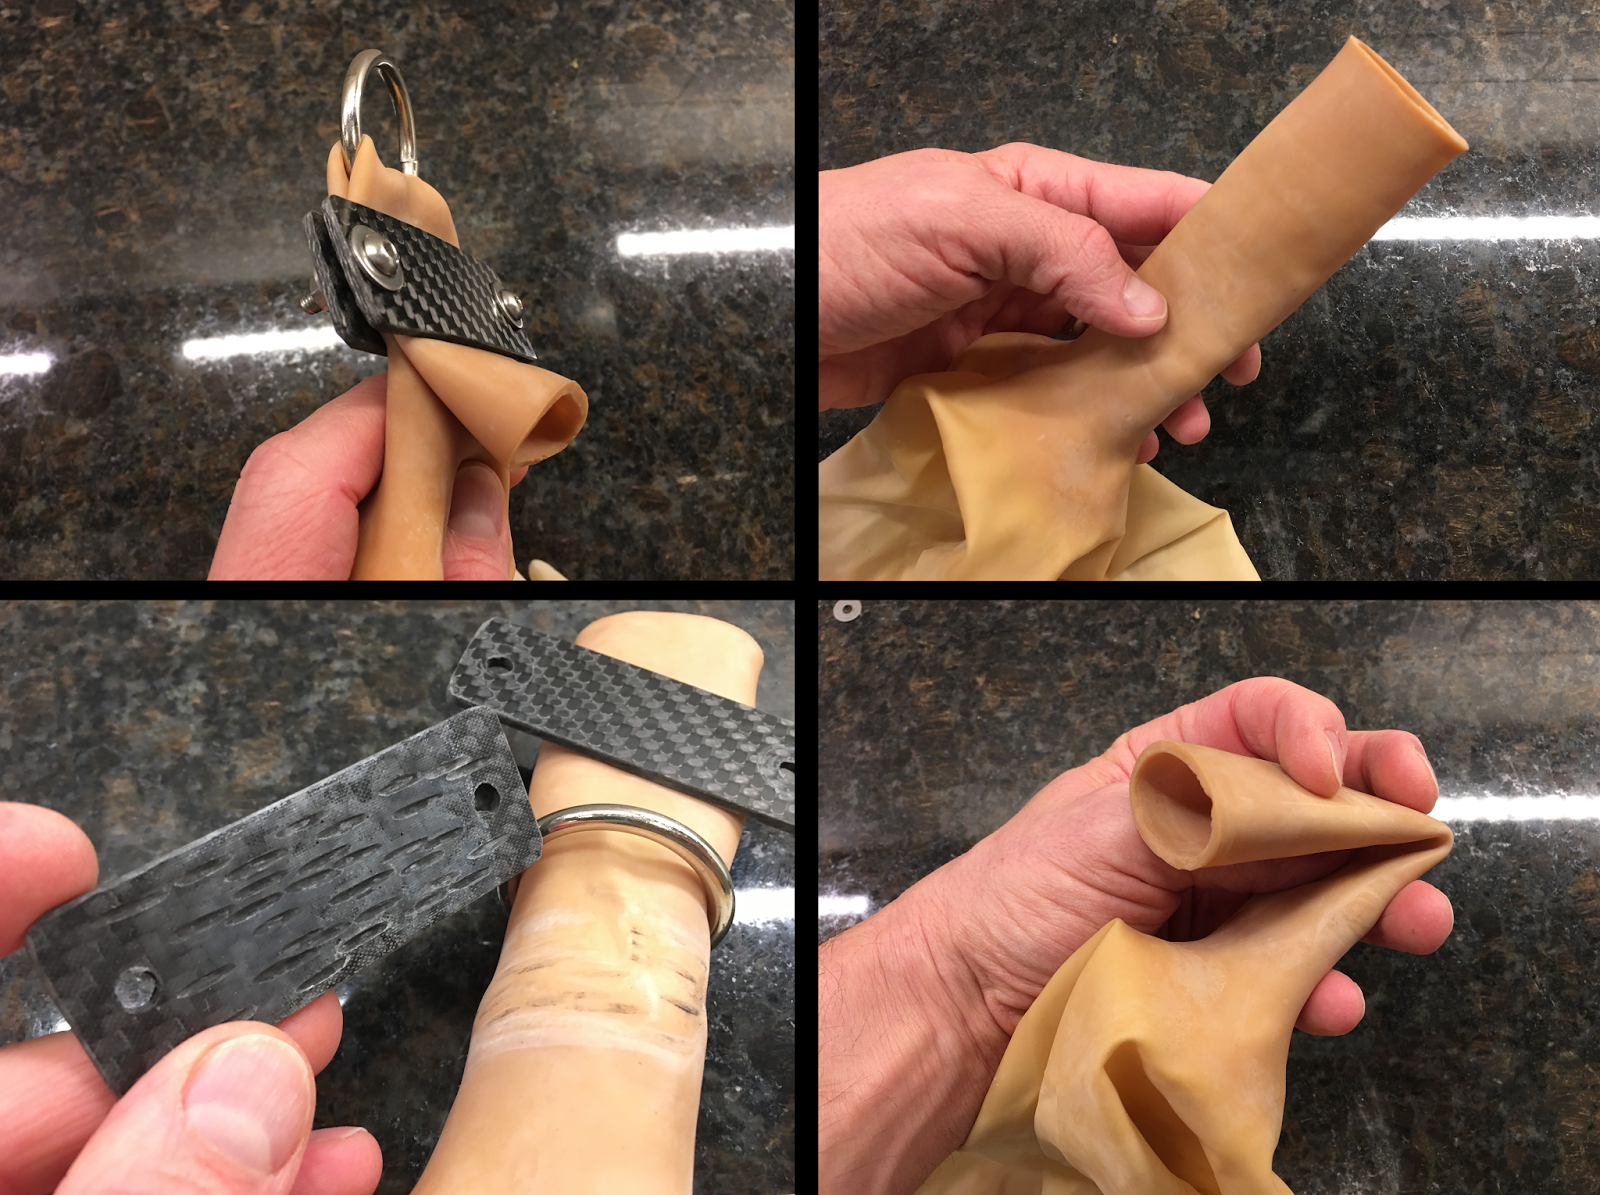 Clockwise from top right: (1) Balloon neck, (2) Neck being folded, (3) Serrated inner surface of carbon fiber plate, (4) Assembled harness with steel ring.